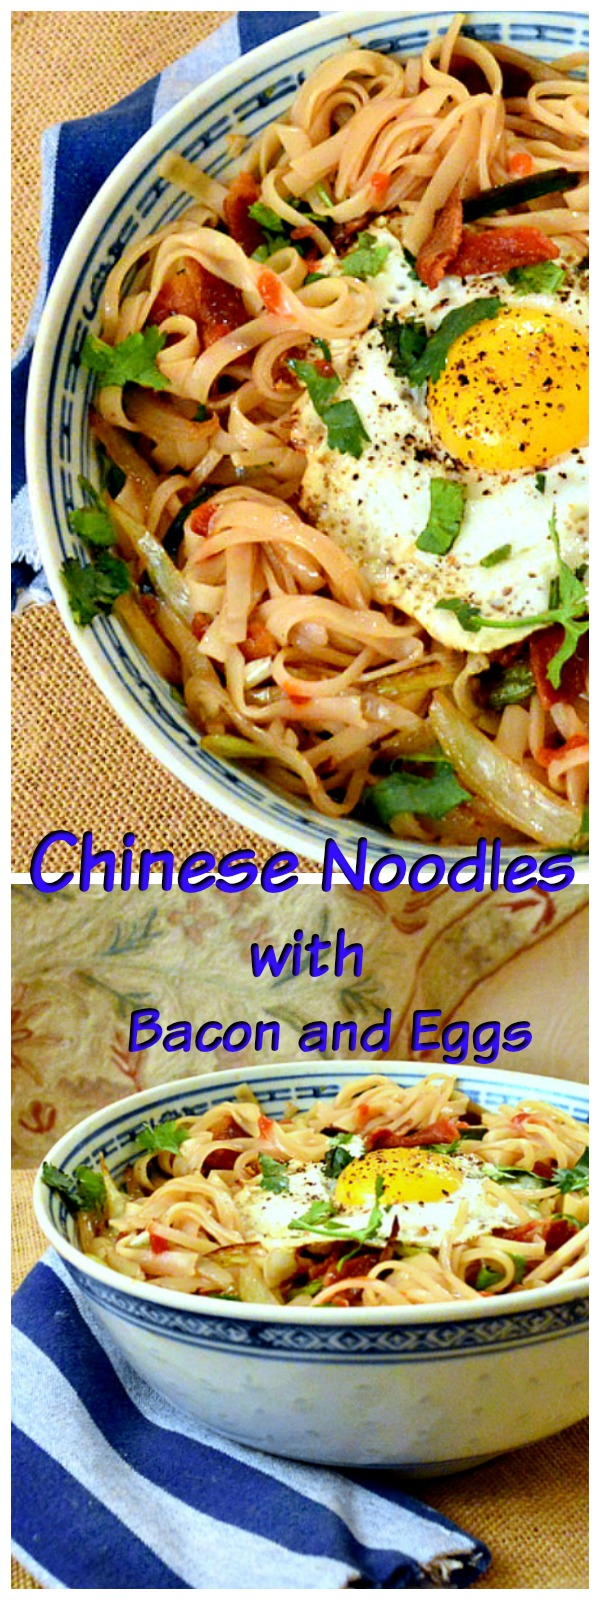 Chinese Noodles with scallions and bacon and topped with and angry egg are peppery and addictive. Try them and you will agree! www.thisishowicook.com #asianfood #chinesefood #noodles